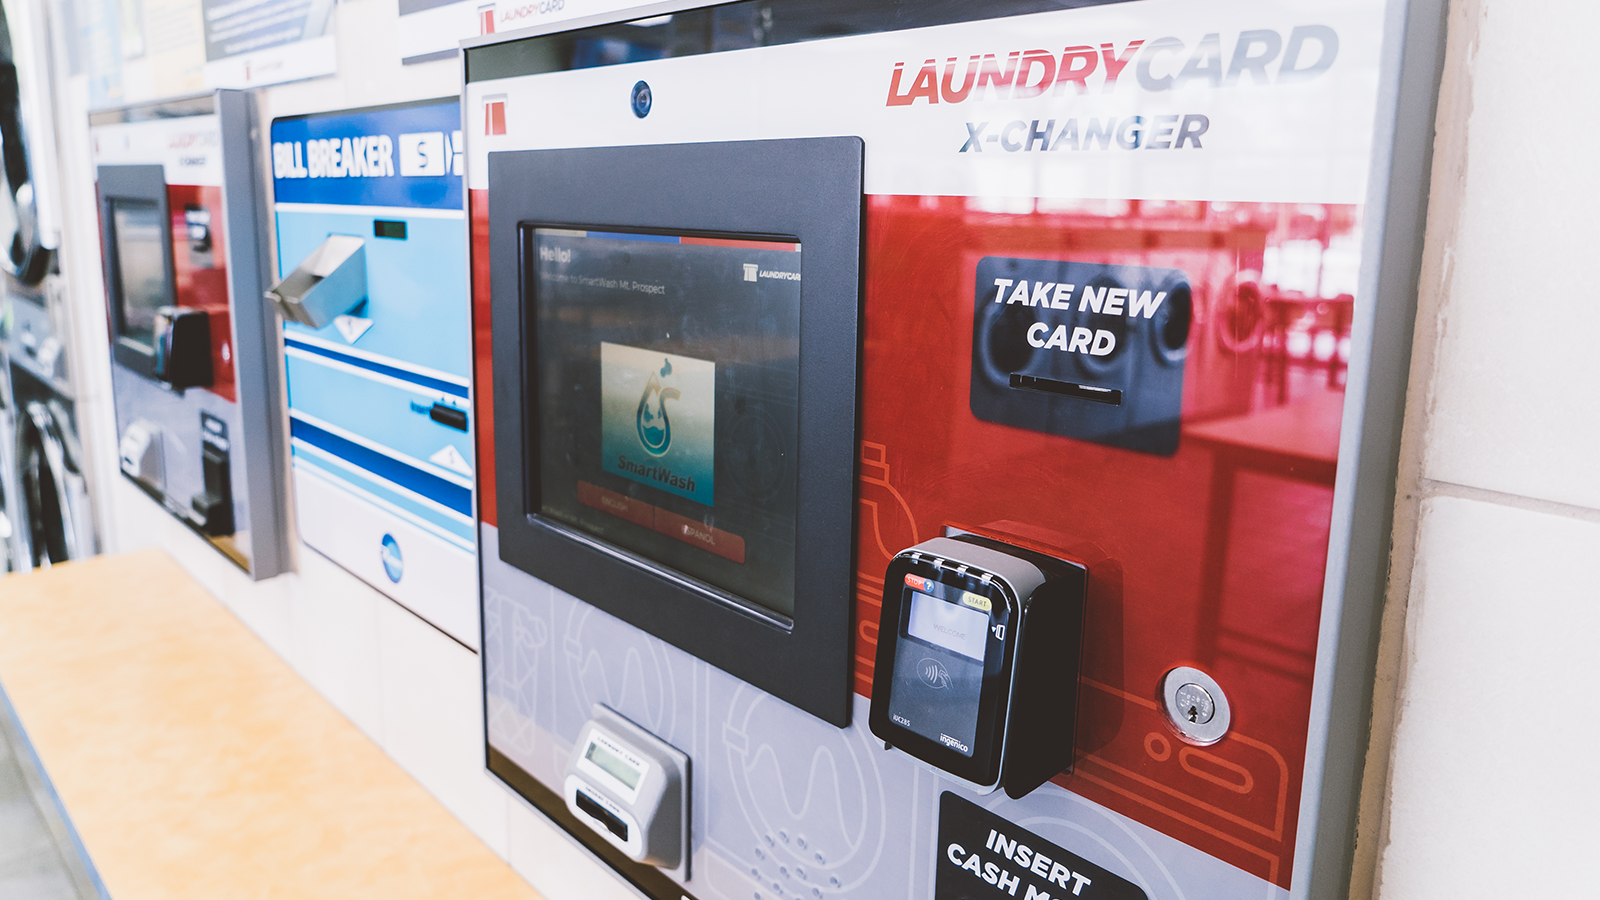 LaundryCard | All-In-One Laundry Management System | Card